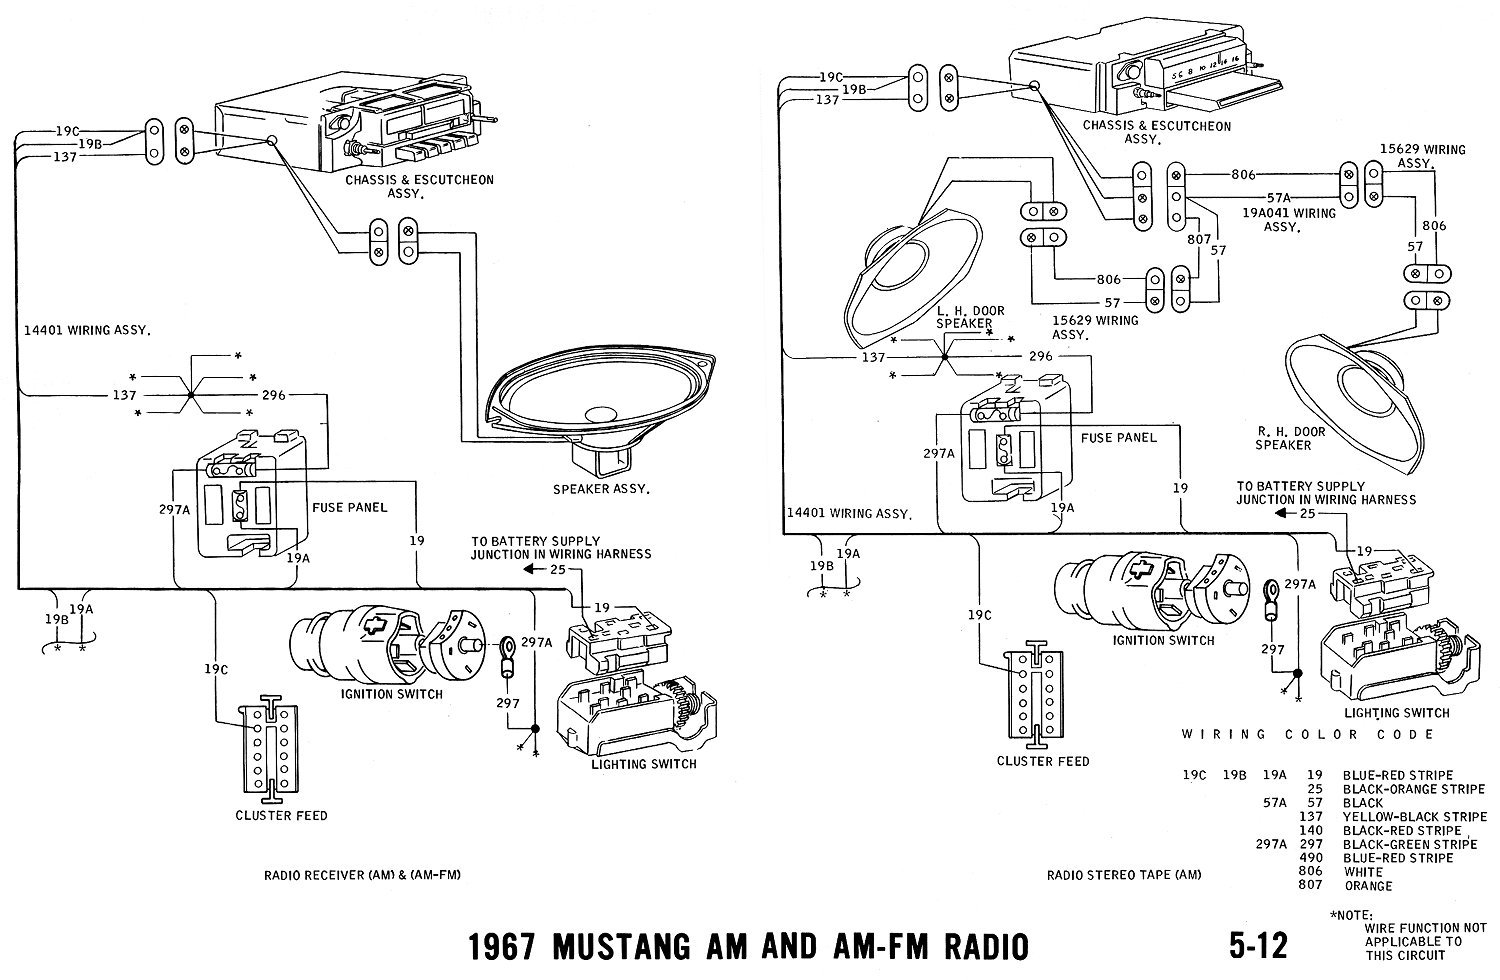 hight resolution of 1967 mustang wiring and vacuum diagrams average joe restoration 1967 mustang instrument cluster wiring diagram 1967 mustang wiring diagram